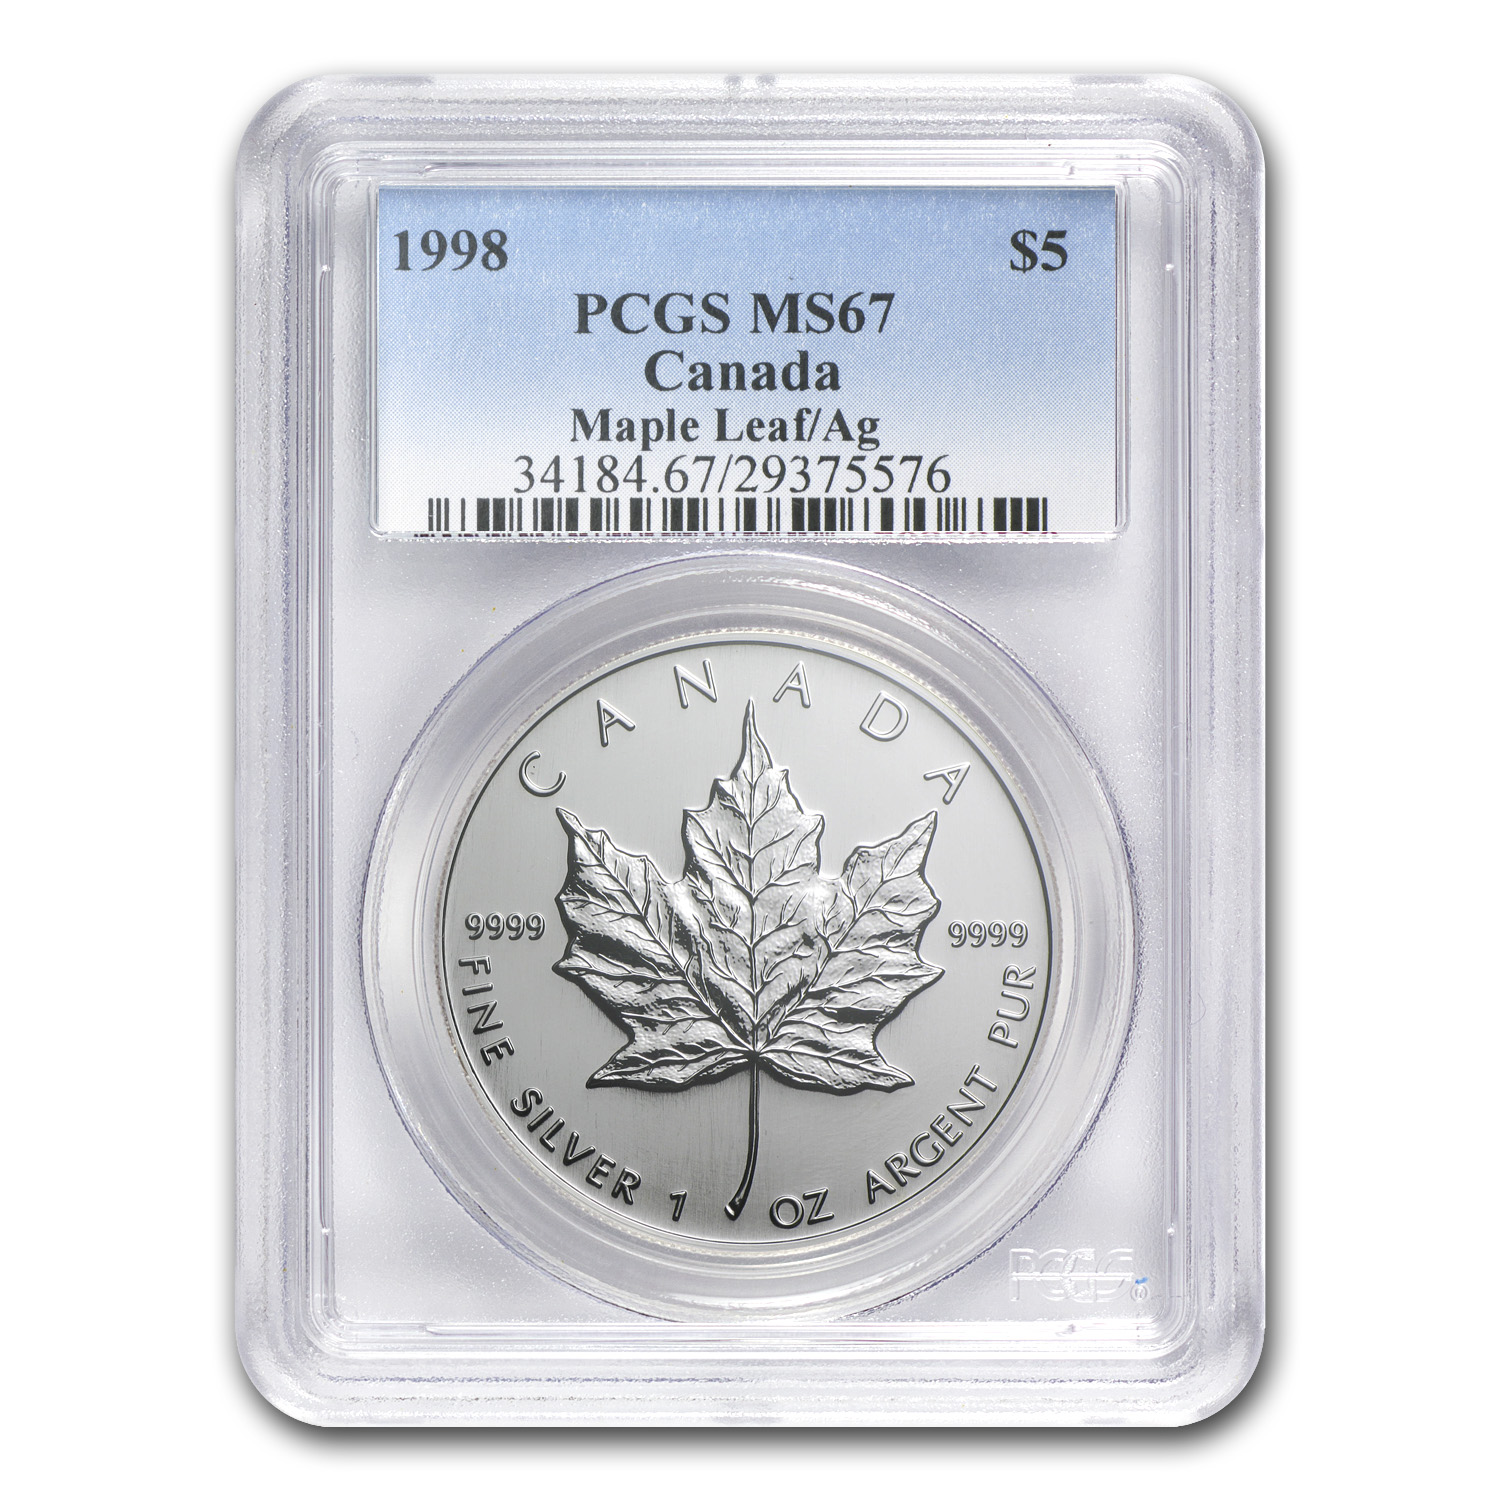 1998 1 oz Silver Canadian Maple Leaf MS-67 PCGS